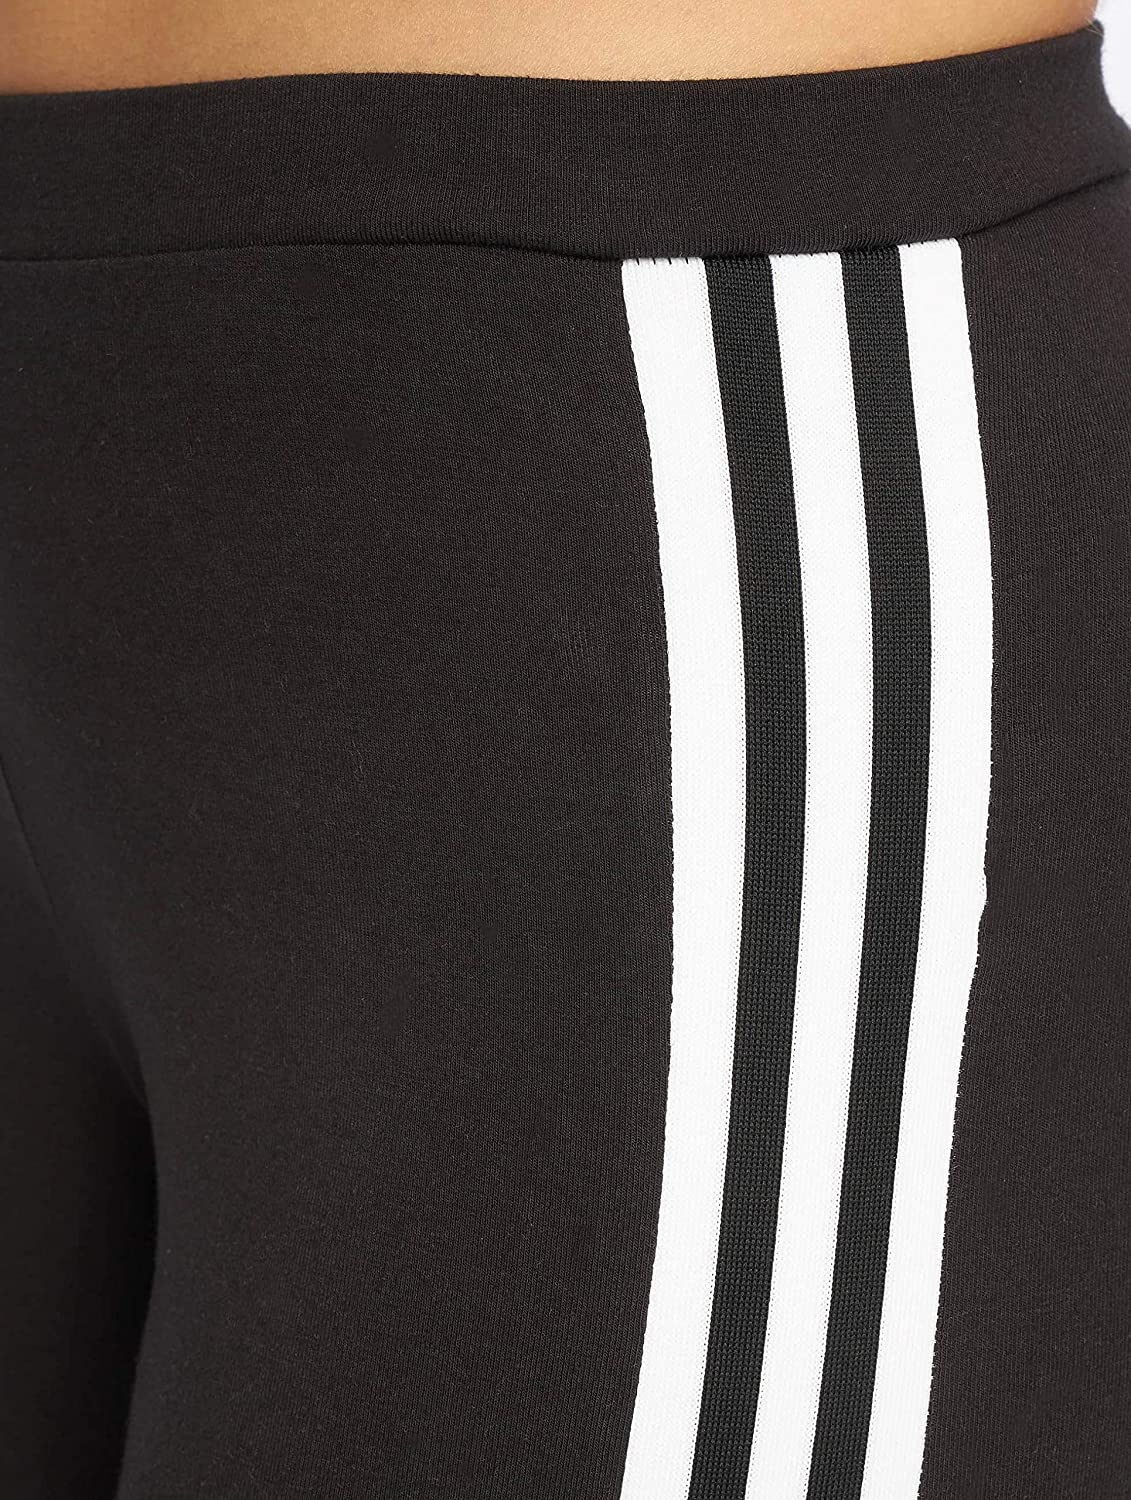 f3aacfd54142d adidas Trefoil Tights, Women: Amazon.co.uk: Clothing